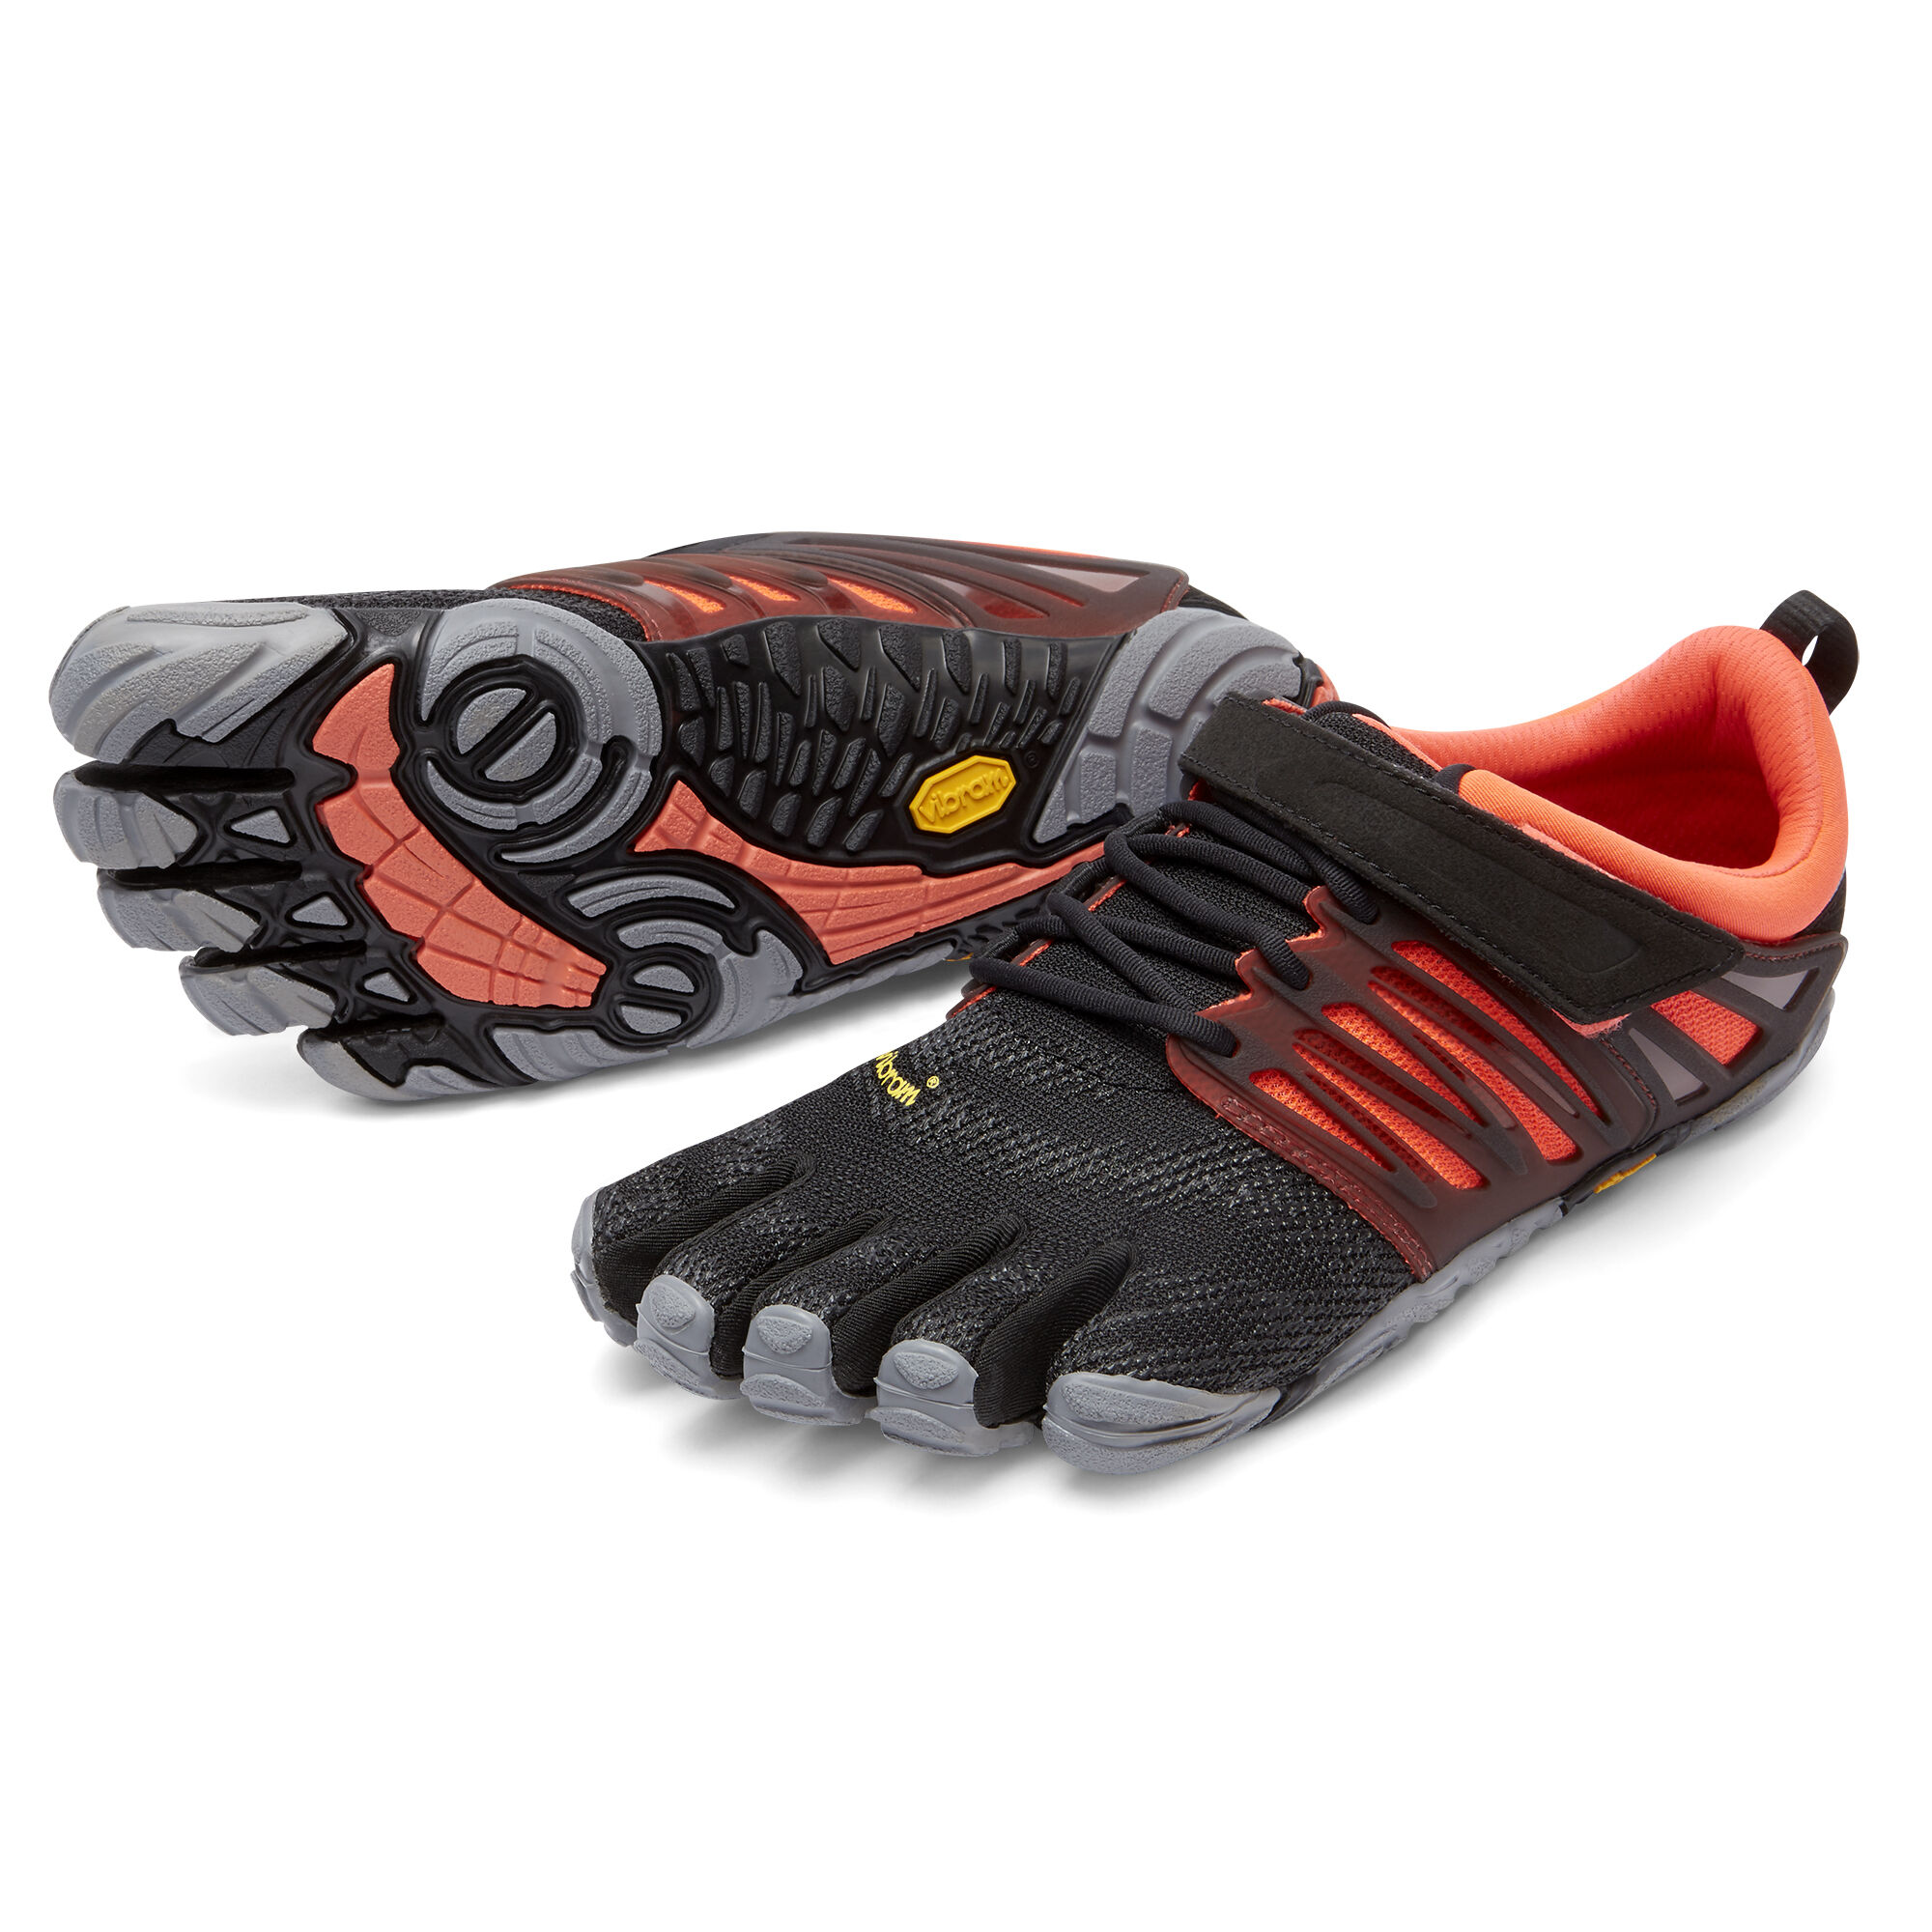 sale shopping online fast delivery Vibram V-Train Training Shoes - Women's Ch0RuBcaB